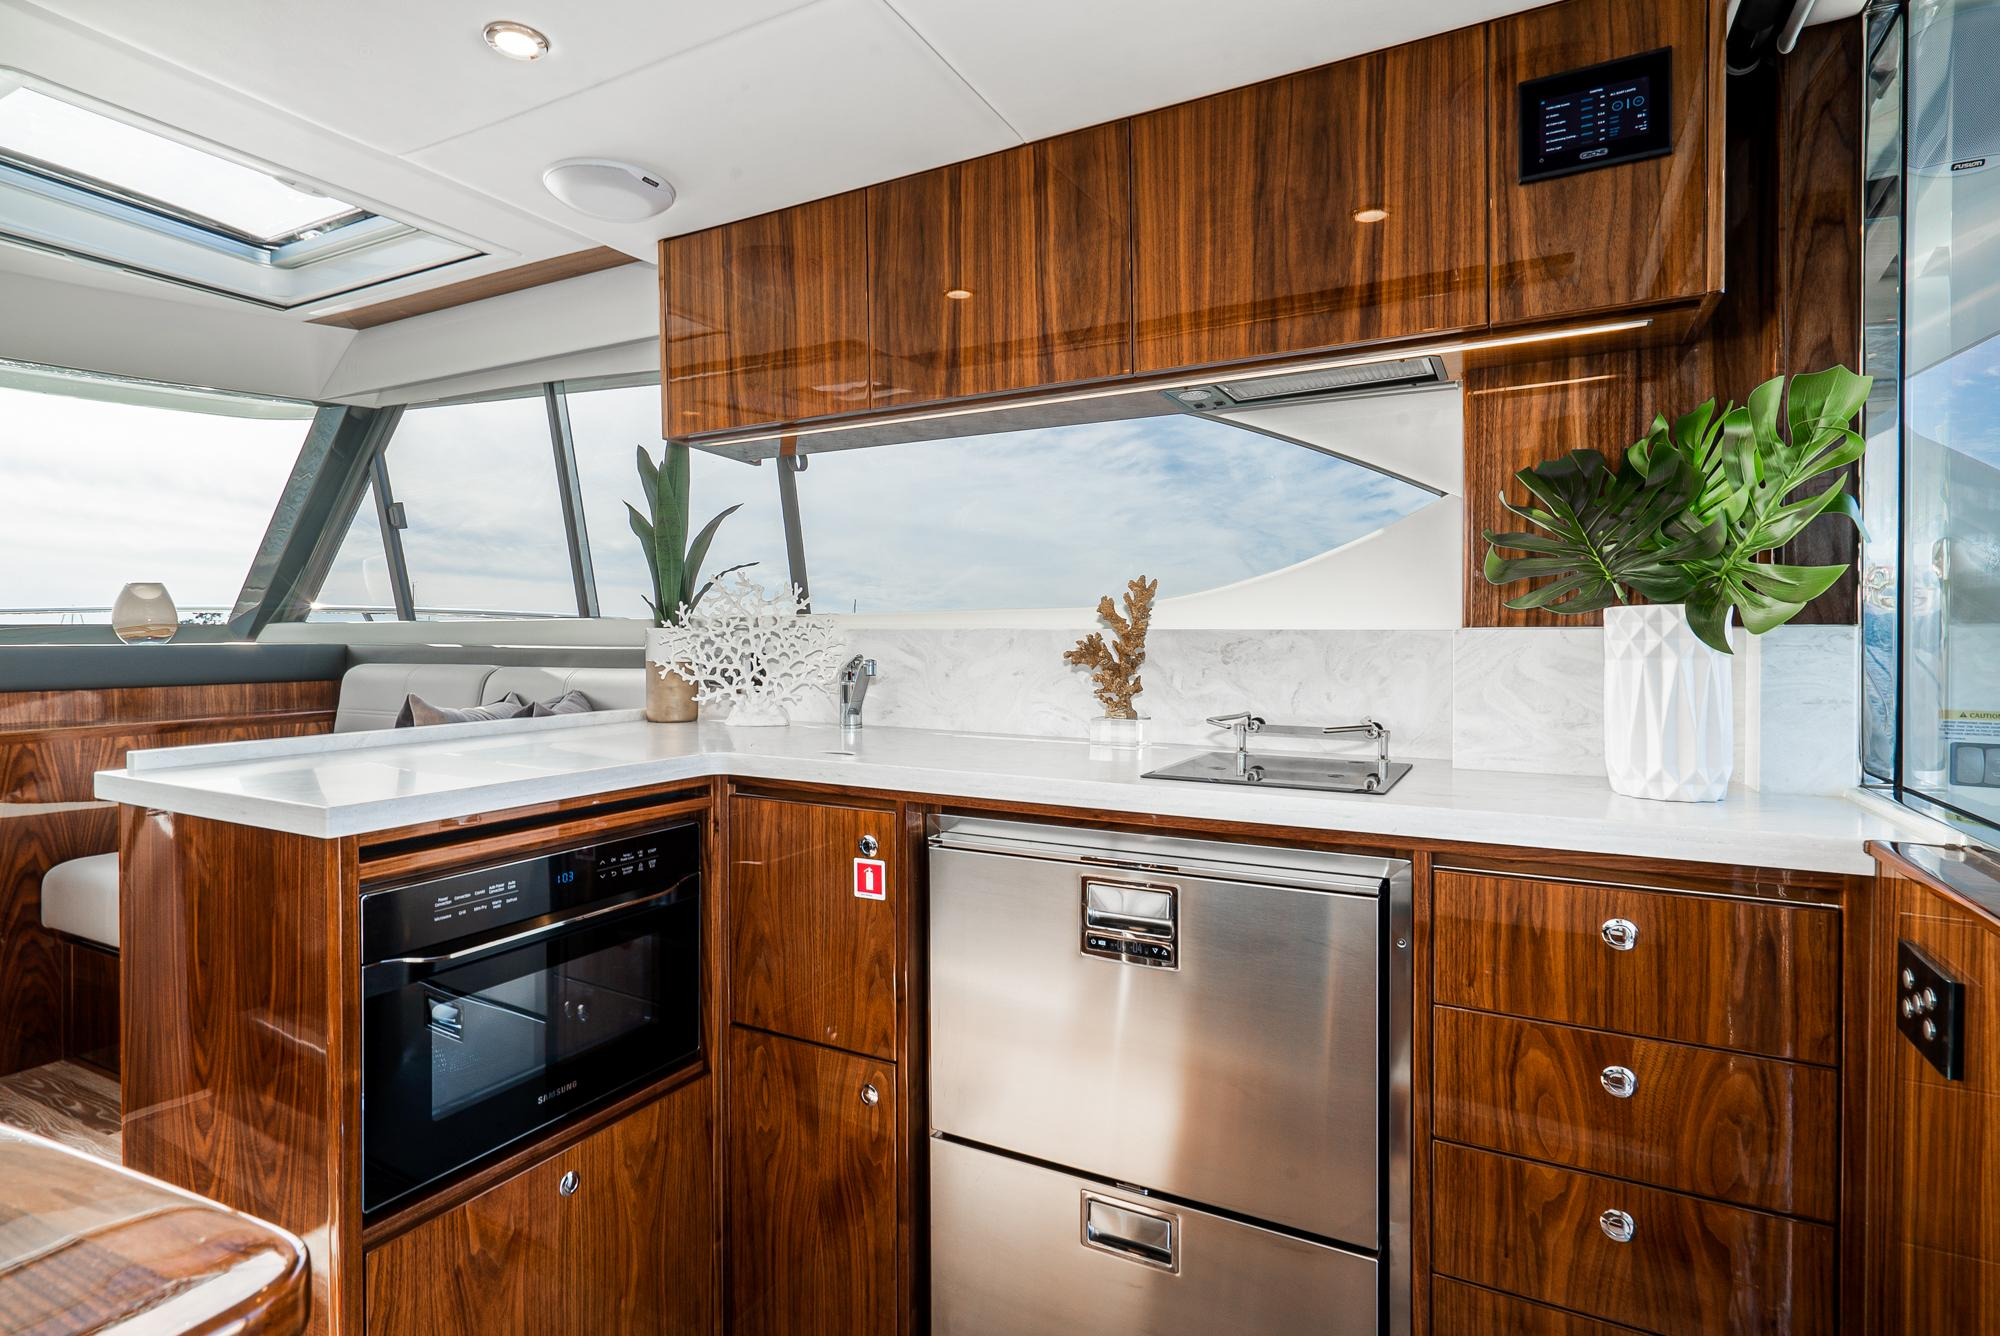 2021 Riviera 395 SUV #R037 inventory image at Sun Country Coastal in San Diego